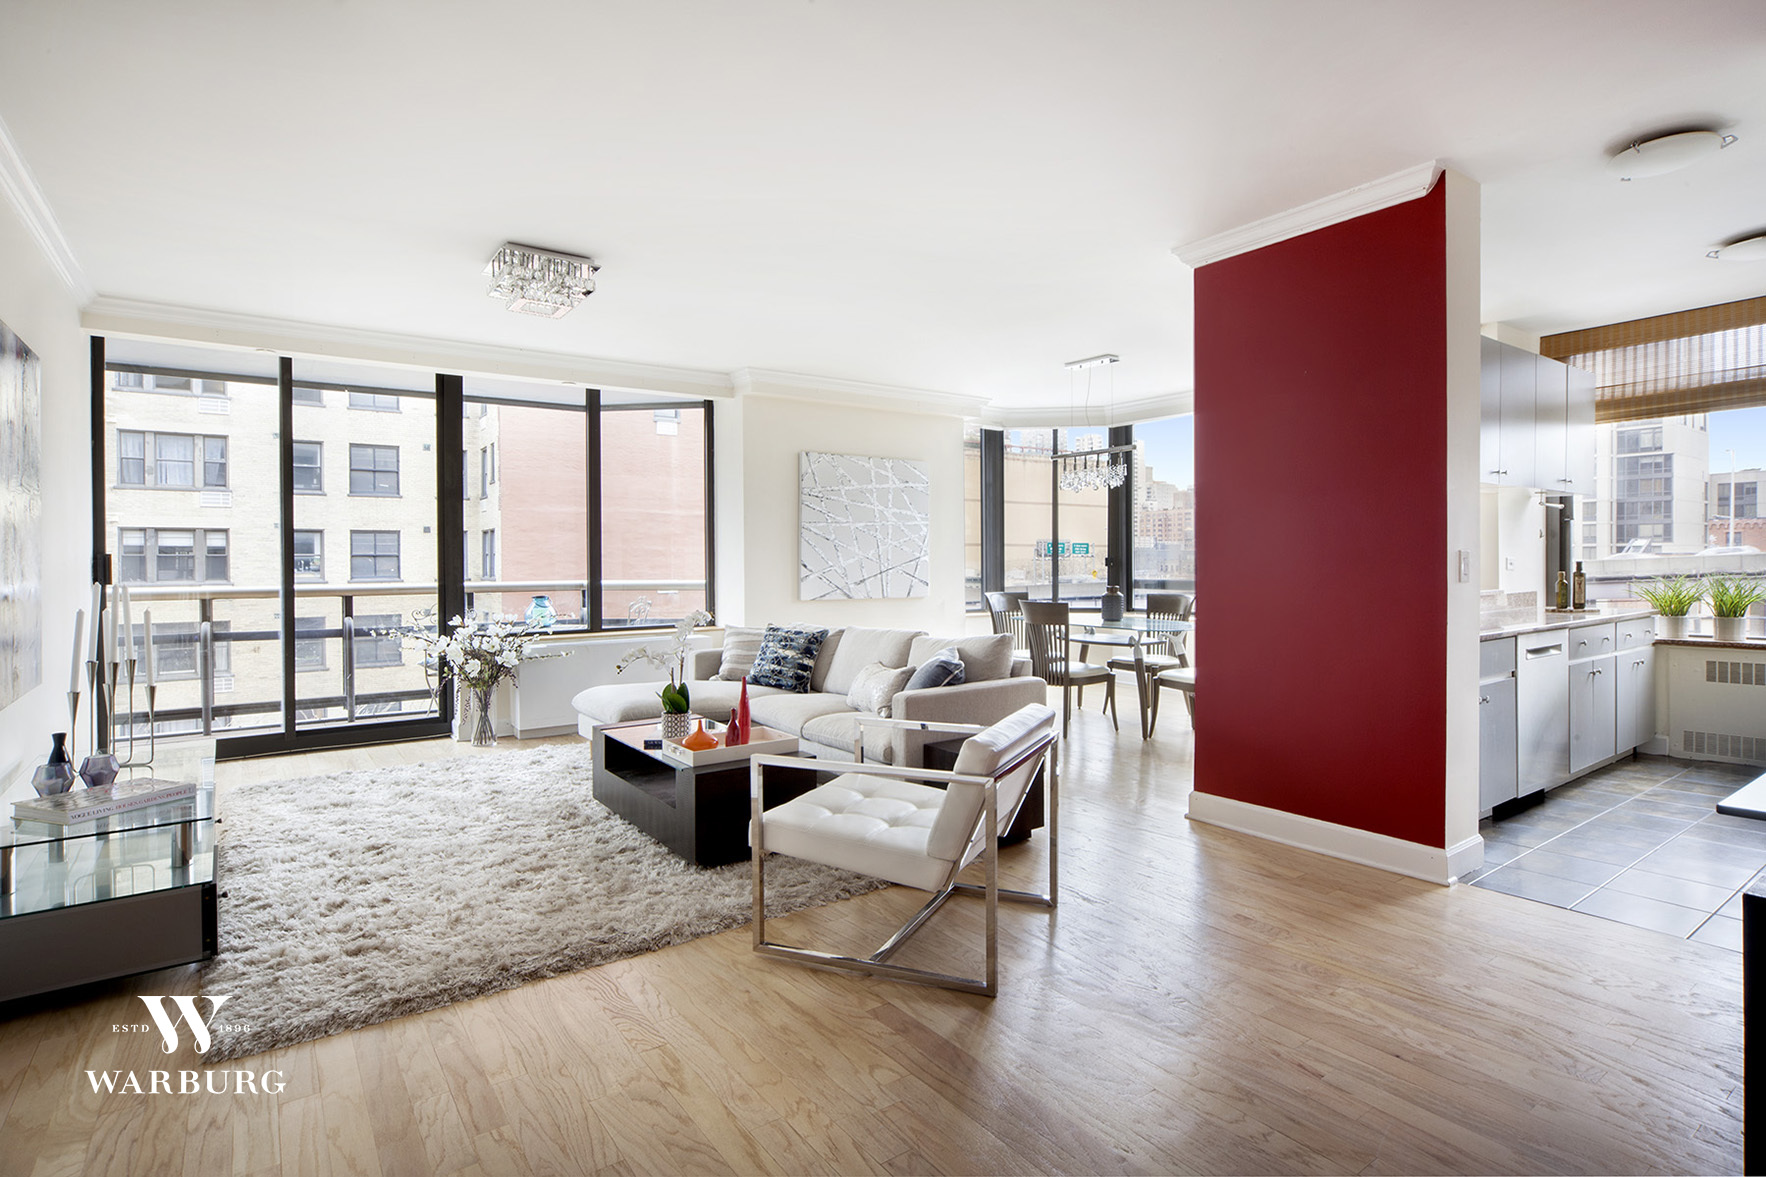 418 East 59th Street, Apt 8B, Manhattan, New York 10022